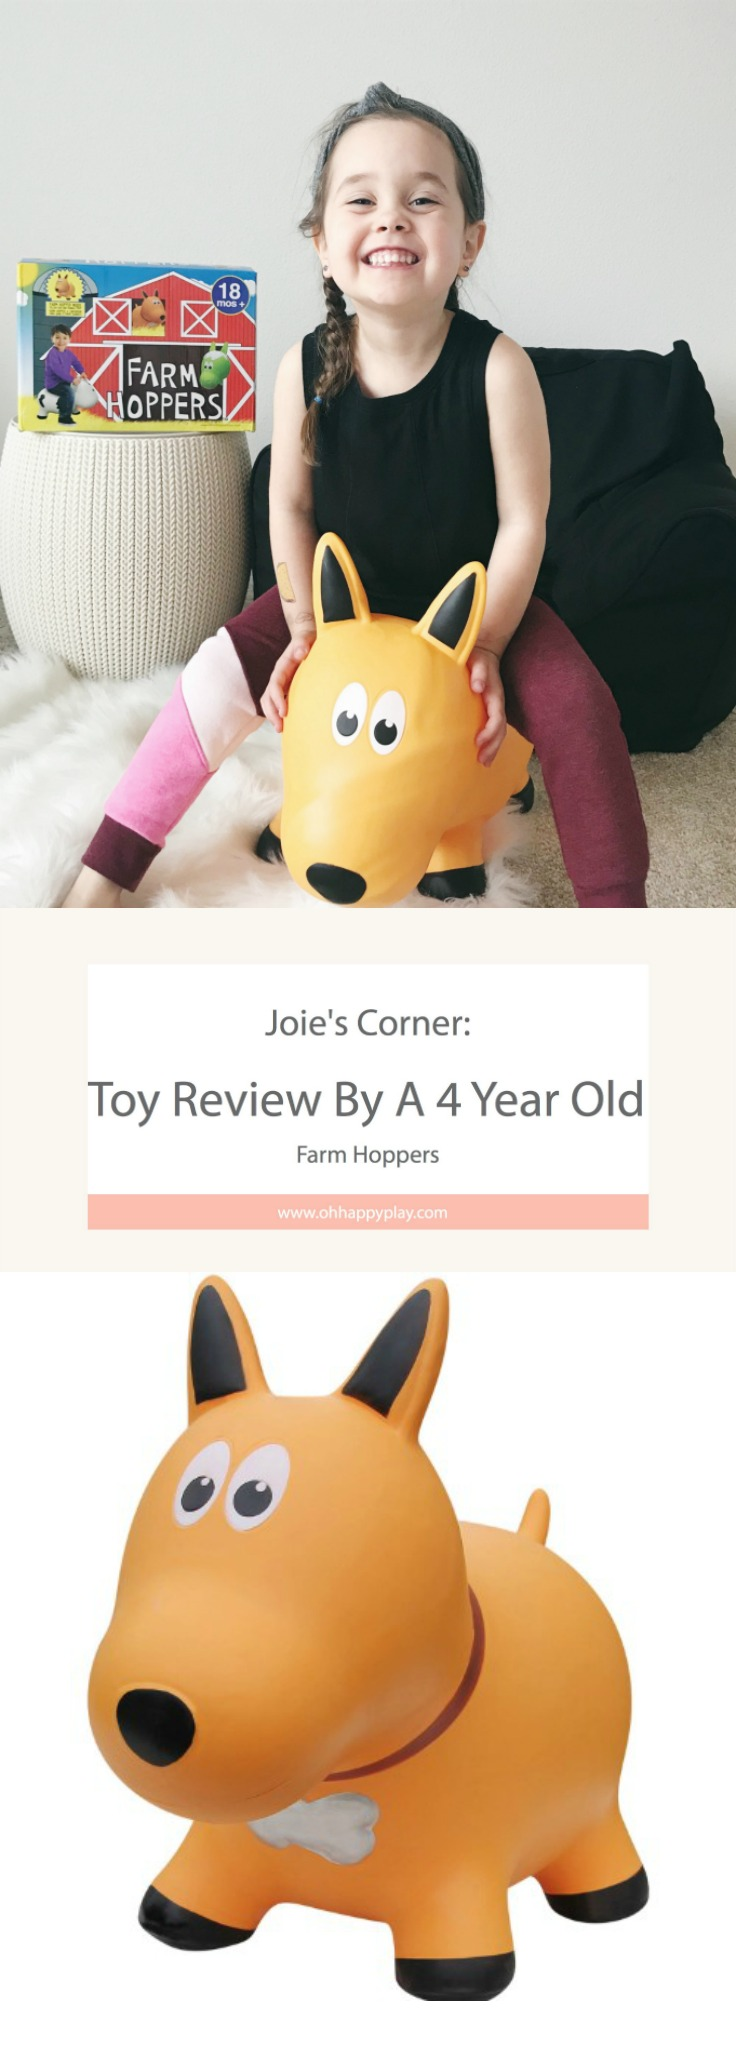 toys for toddlers, farm hopper, bouncy toys for toddlers, kids toys, kids bouncy toys